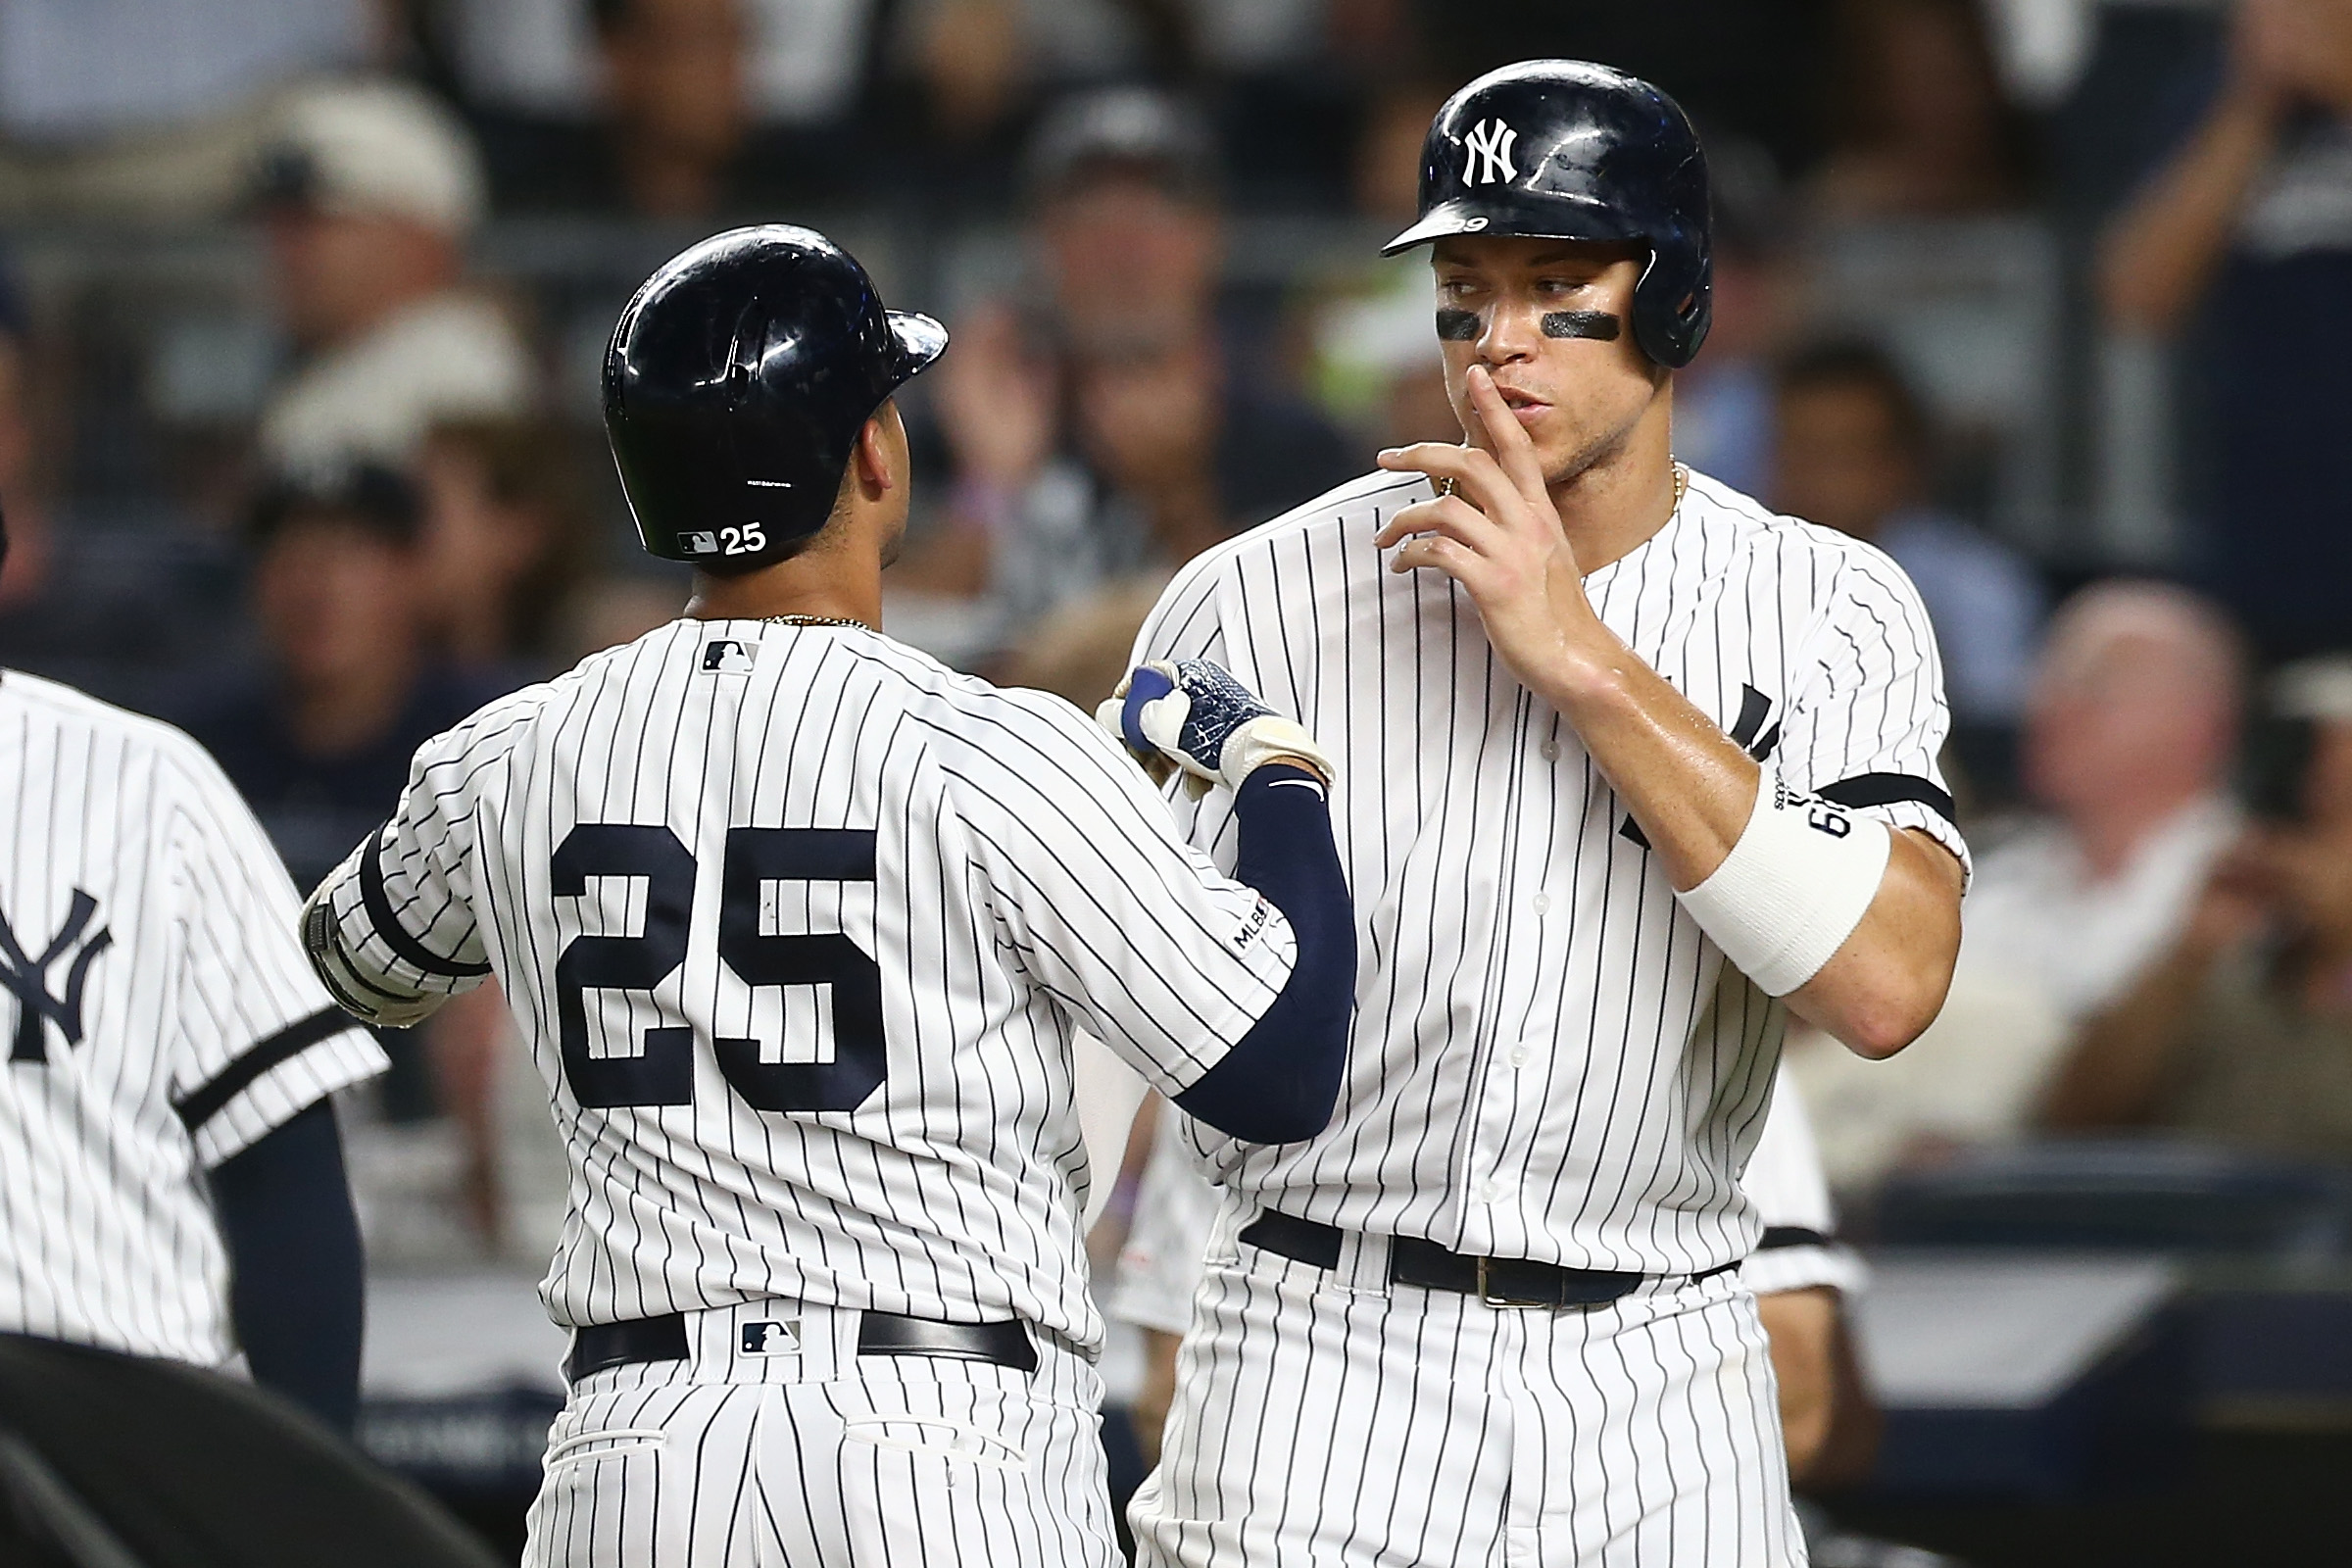 The Yankees destroyed the Orioles in 2019 more than any team ever has